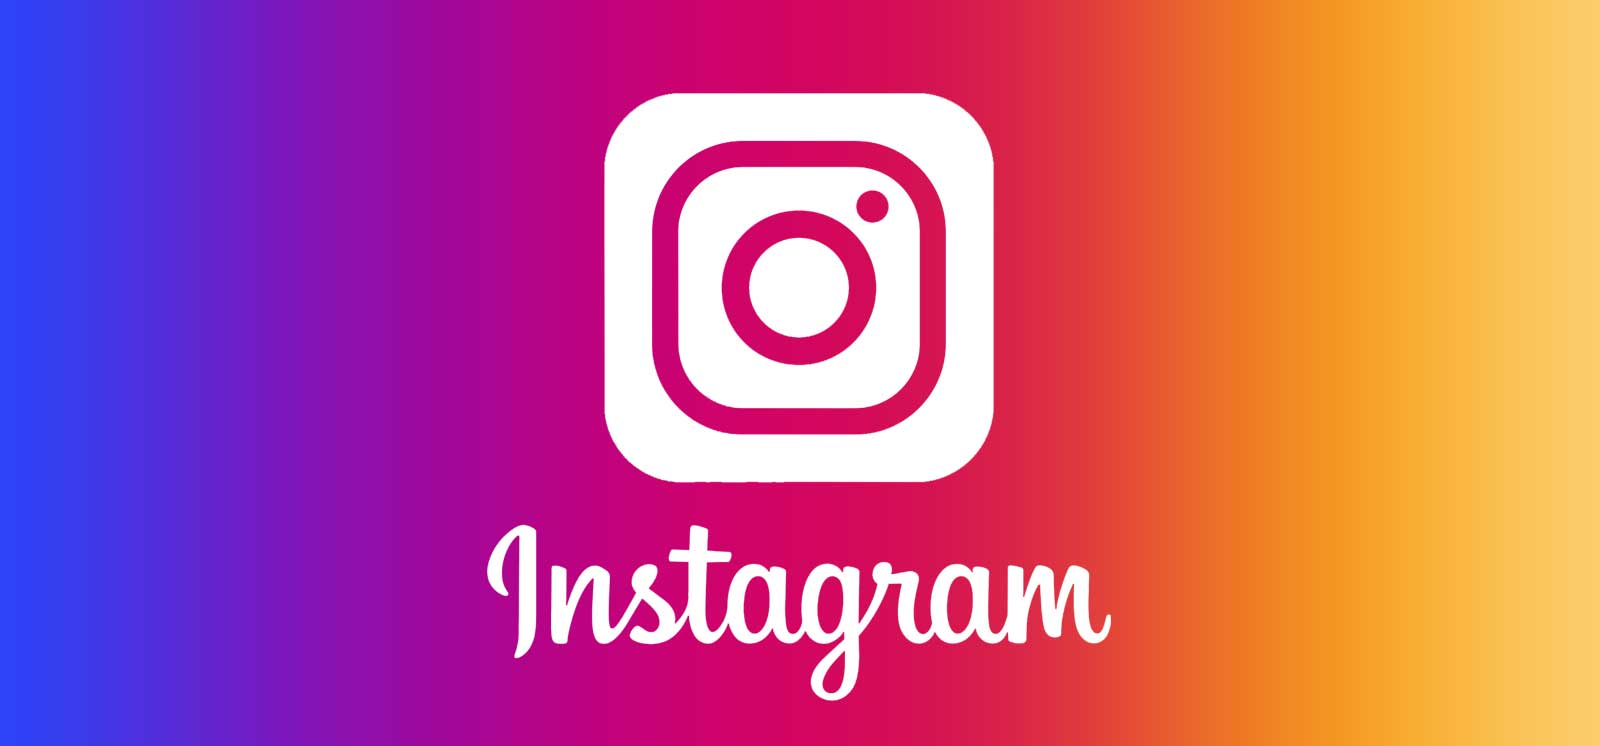 Instagram Just Got Hacked!